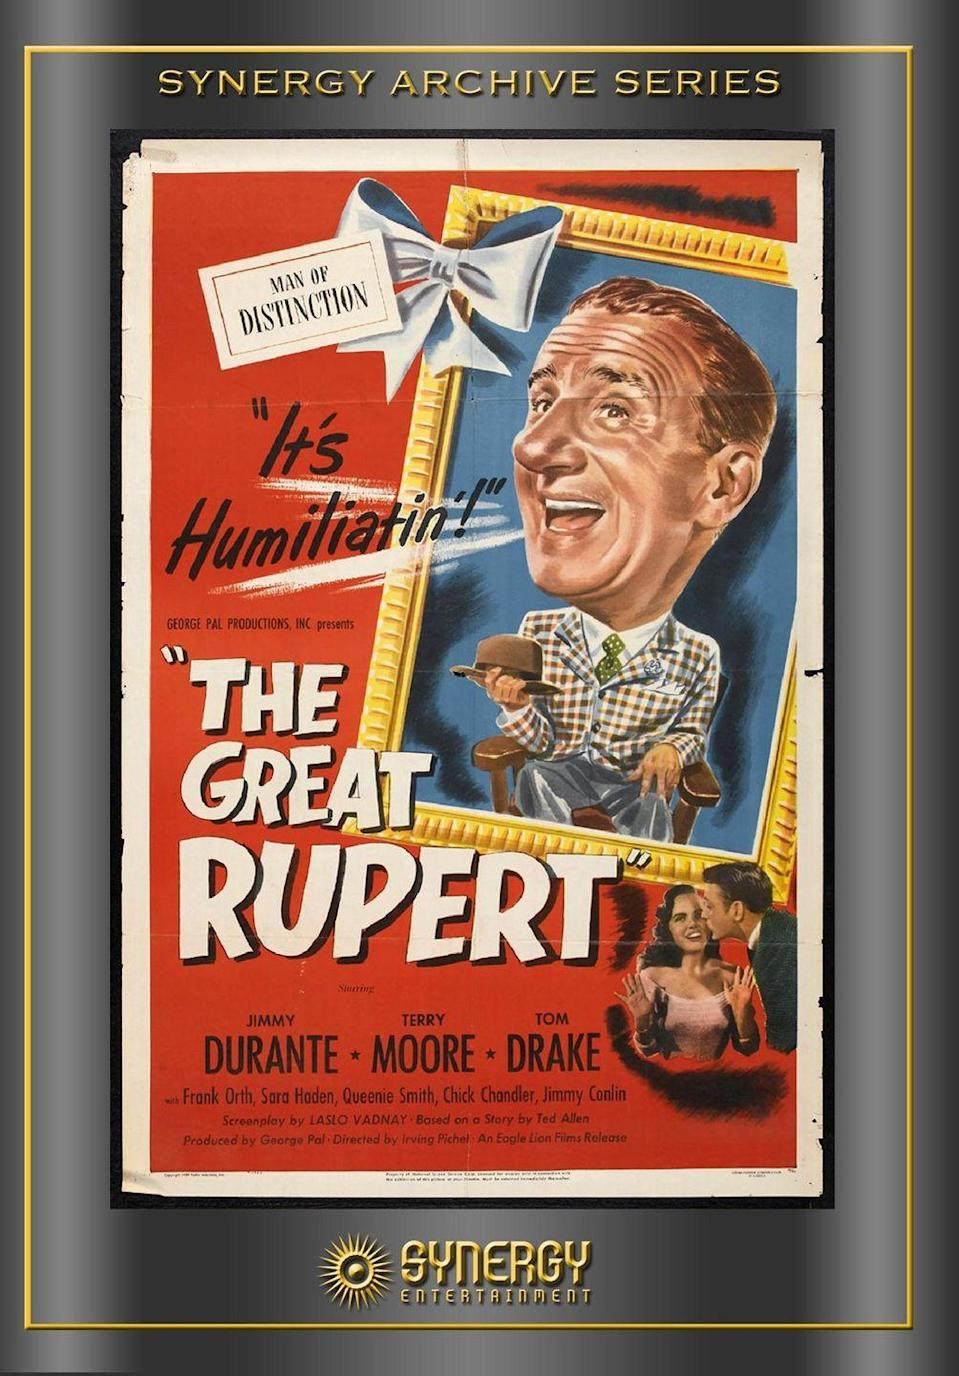 """<p>This classic, released in 1950, brings together two struggling families and a friendly squirrel named Rupert. Let's just say the holiday gets <em>rather</em> interesting ...</p><p><a class=""""link rapid-noclick-resp"""" href=""""https://www.amazon.com/Great-Rupert-Jimmy-Durante/dp/B006QSSL3S/?tag=syn-yahoo-20&ascsubtag=%5Bartid%7C10055.g.1315%5Bsrc%7Cyahoo-us"""" rel=""""nofollow noopener"""" target=""""_blank"""" data-ylk=""""slk:WATCH NOW"""">WATCH NOW</a></p>"""